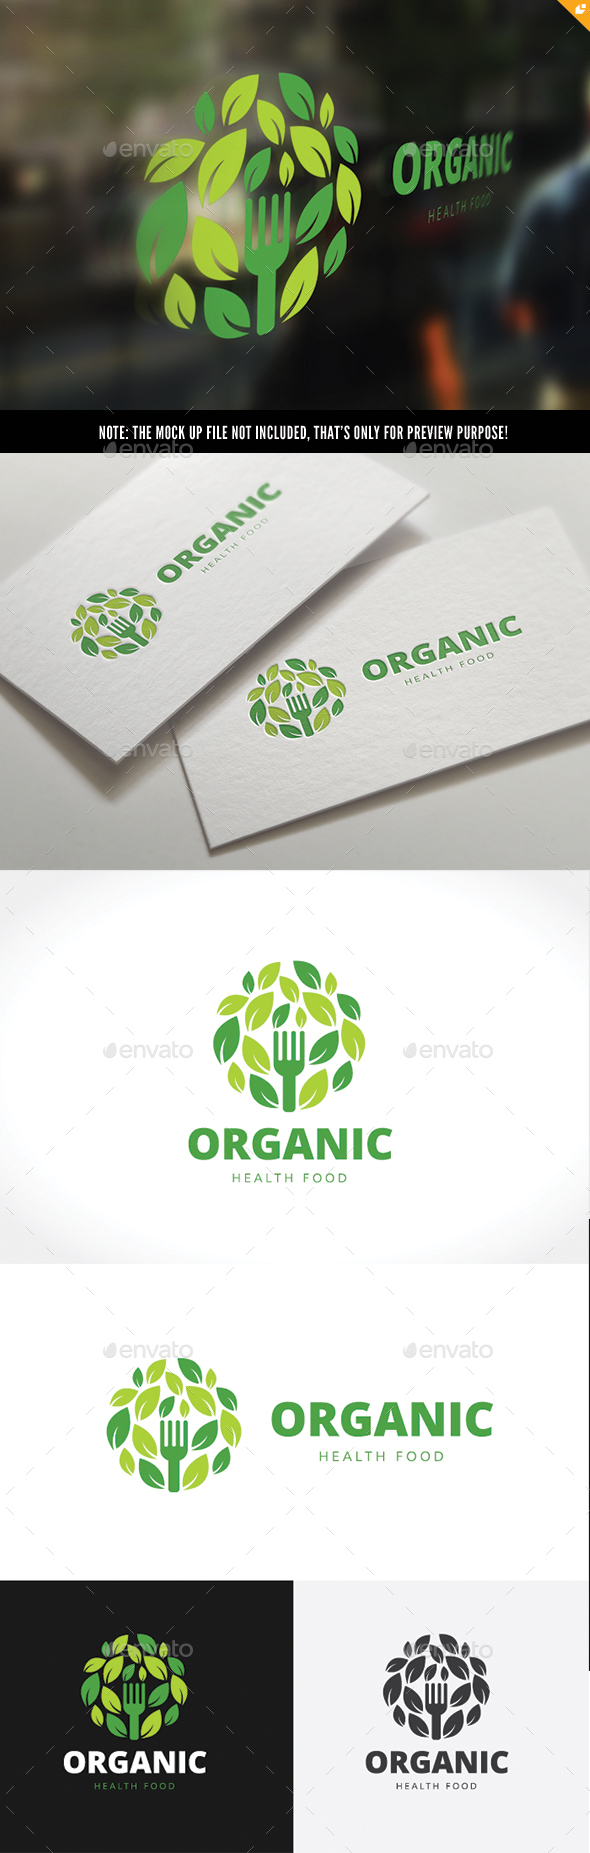 Organic Healthy Food Logo